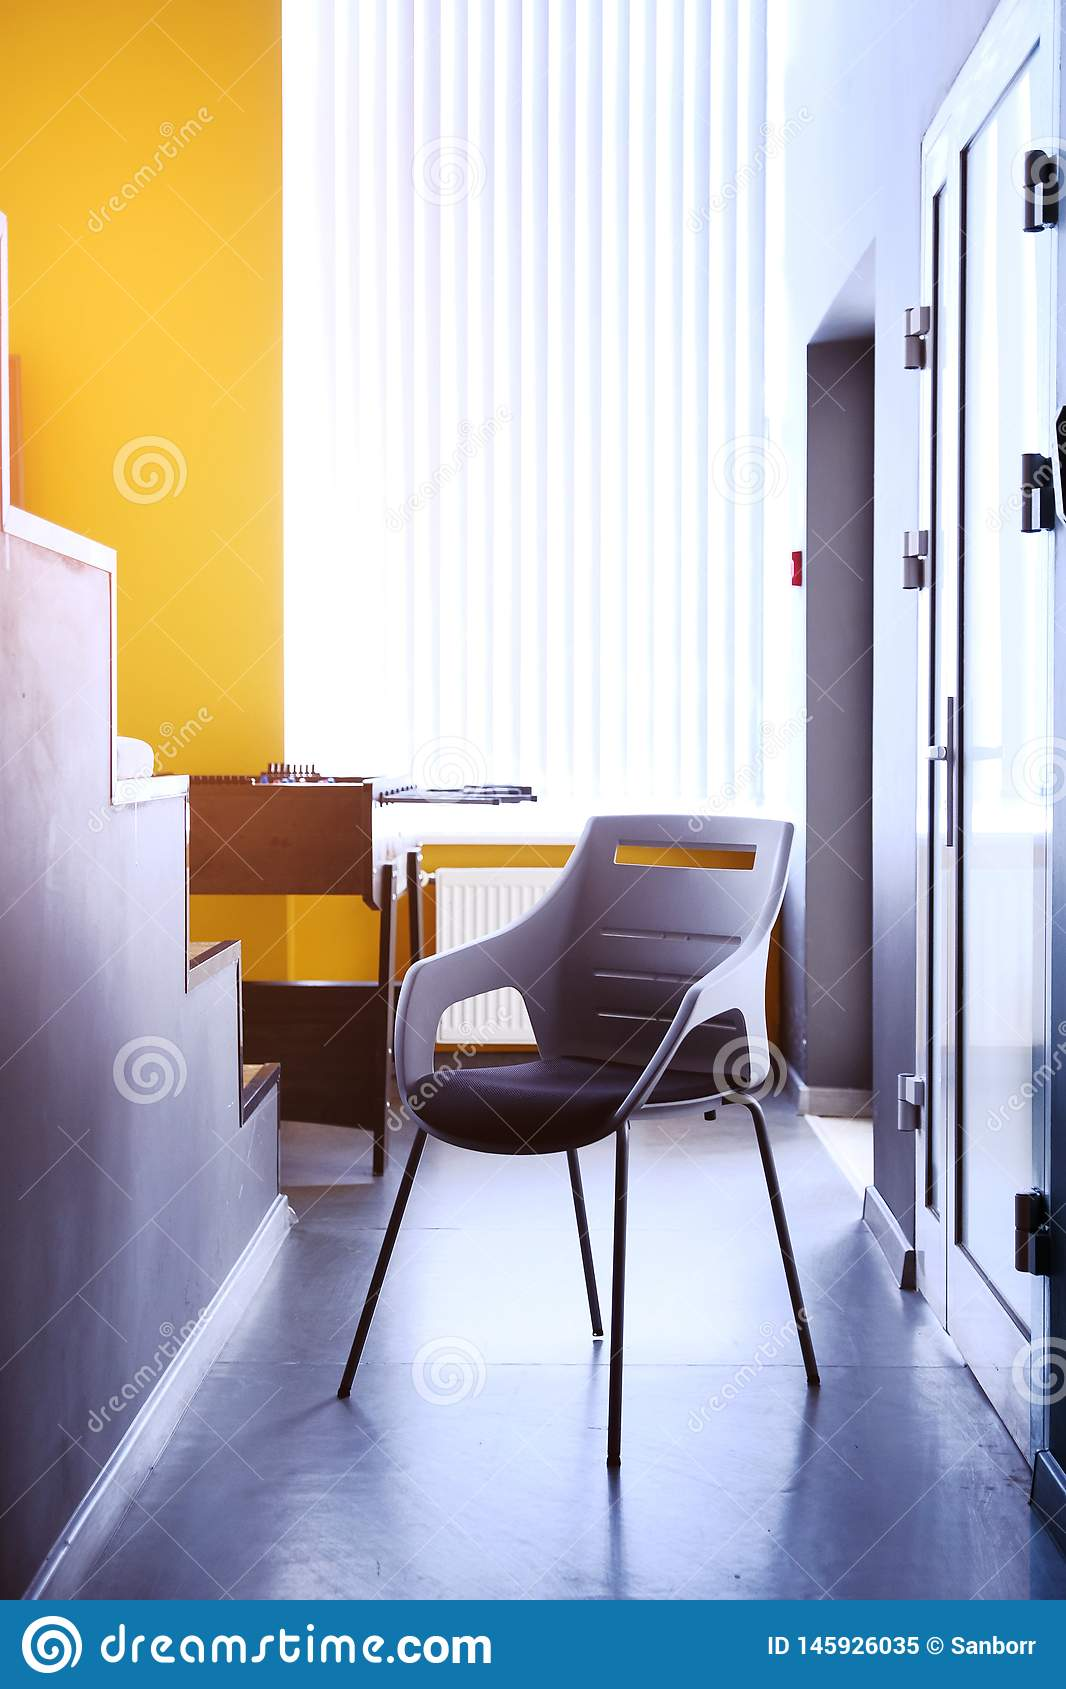 Black chair in the hallway of the apartment, a real photo with a copy of the space on the white wall. Beautiful office space. The